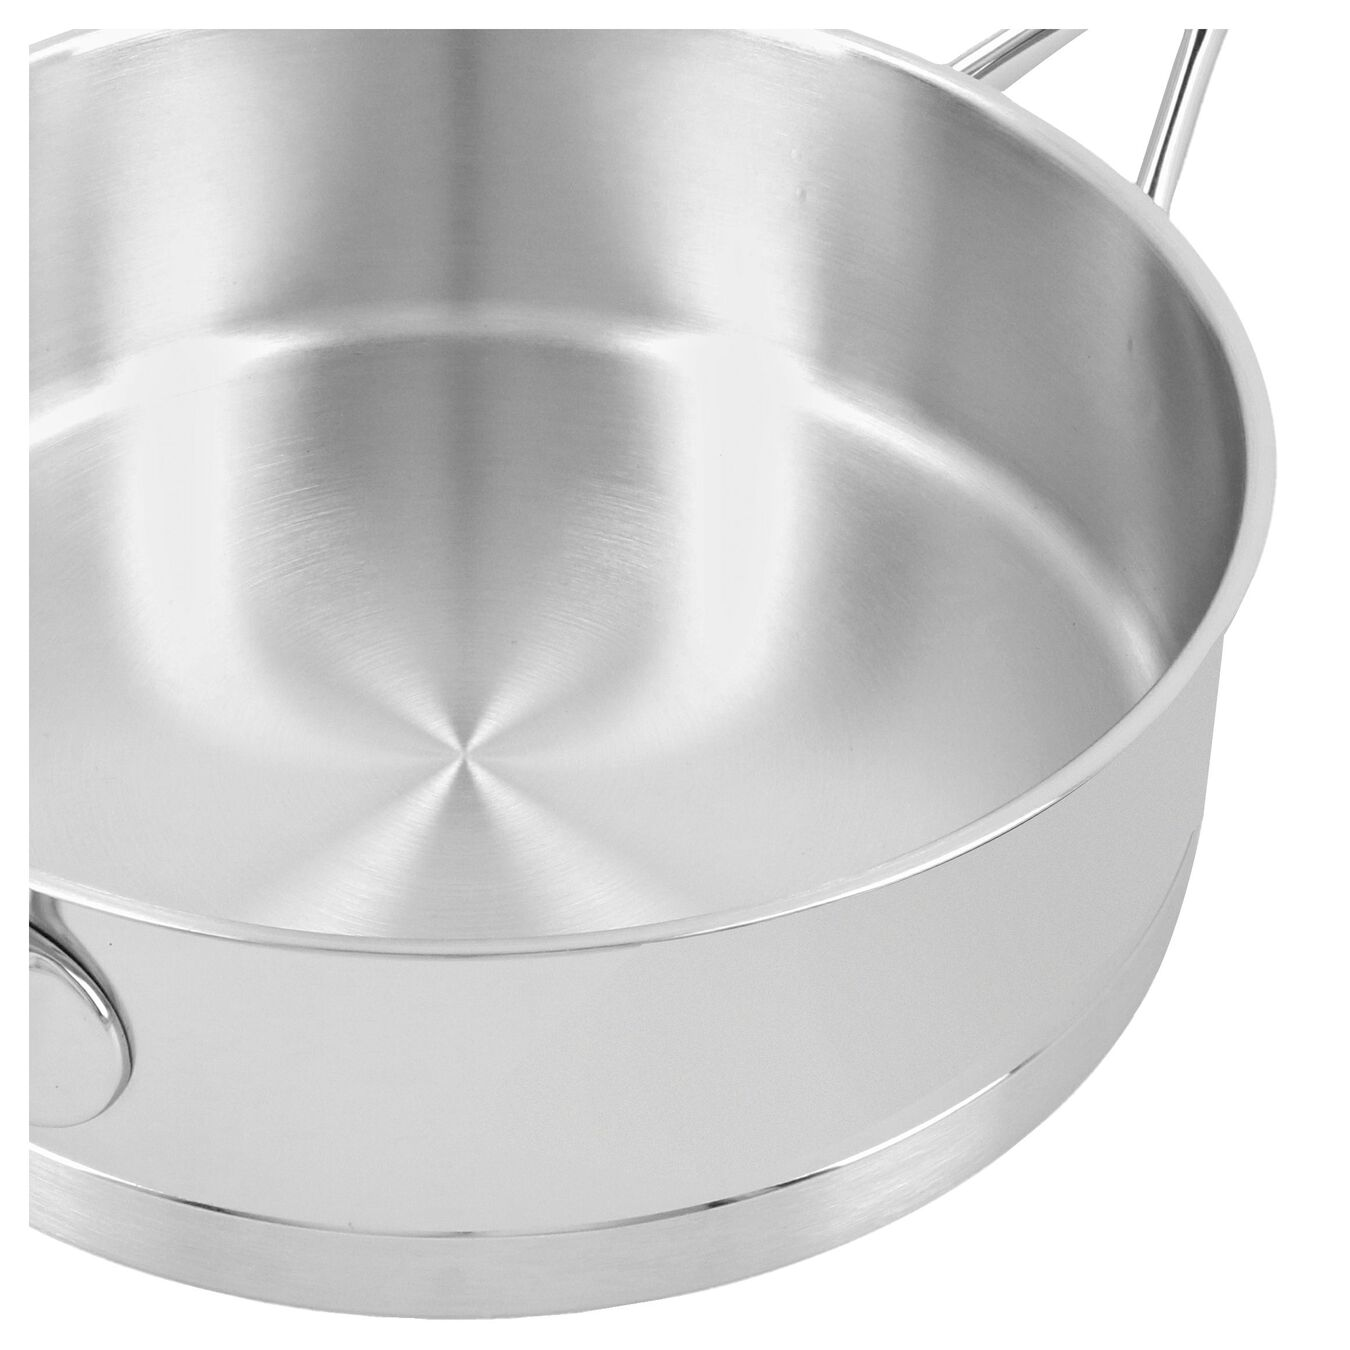 9.5-inch Sauté Pan with Helper Handle and Lid, 18/10 Stainless Steel ,,large 4